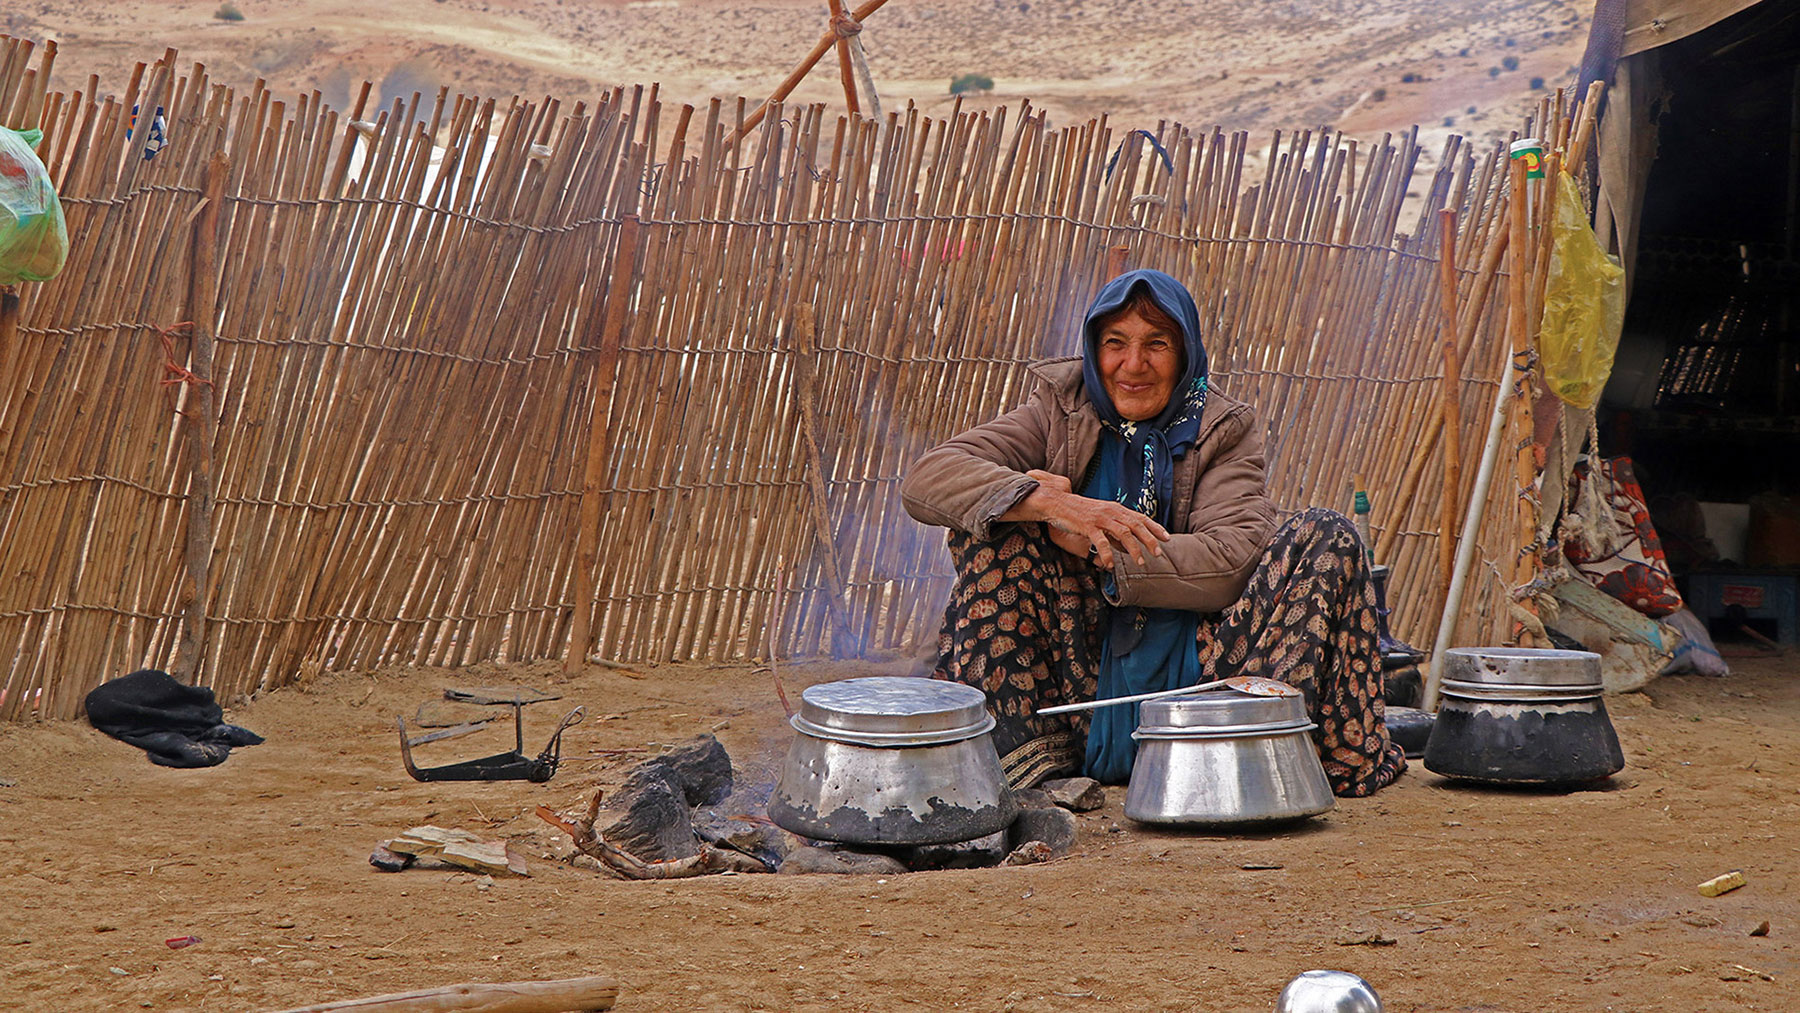 Live with Persian Nomads in Zagros Mountains